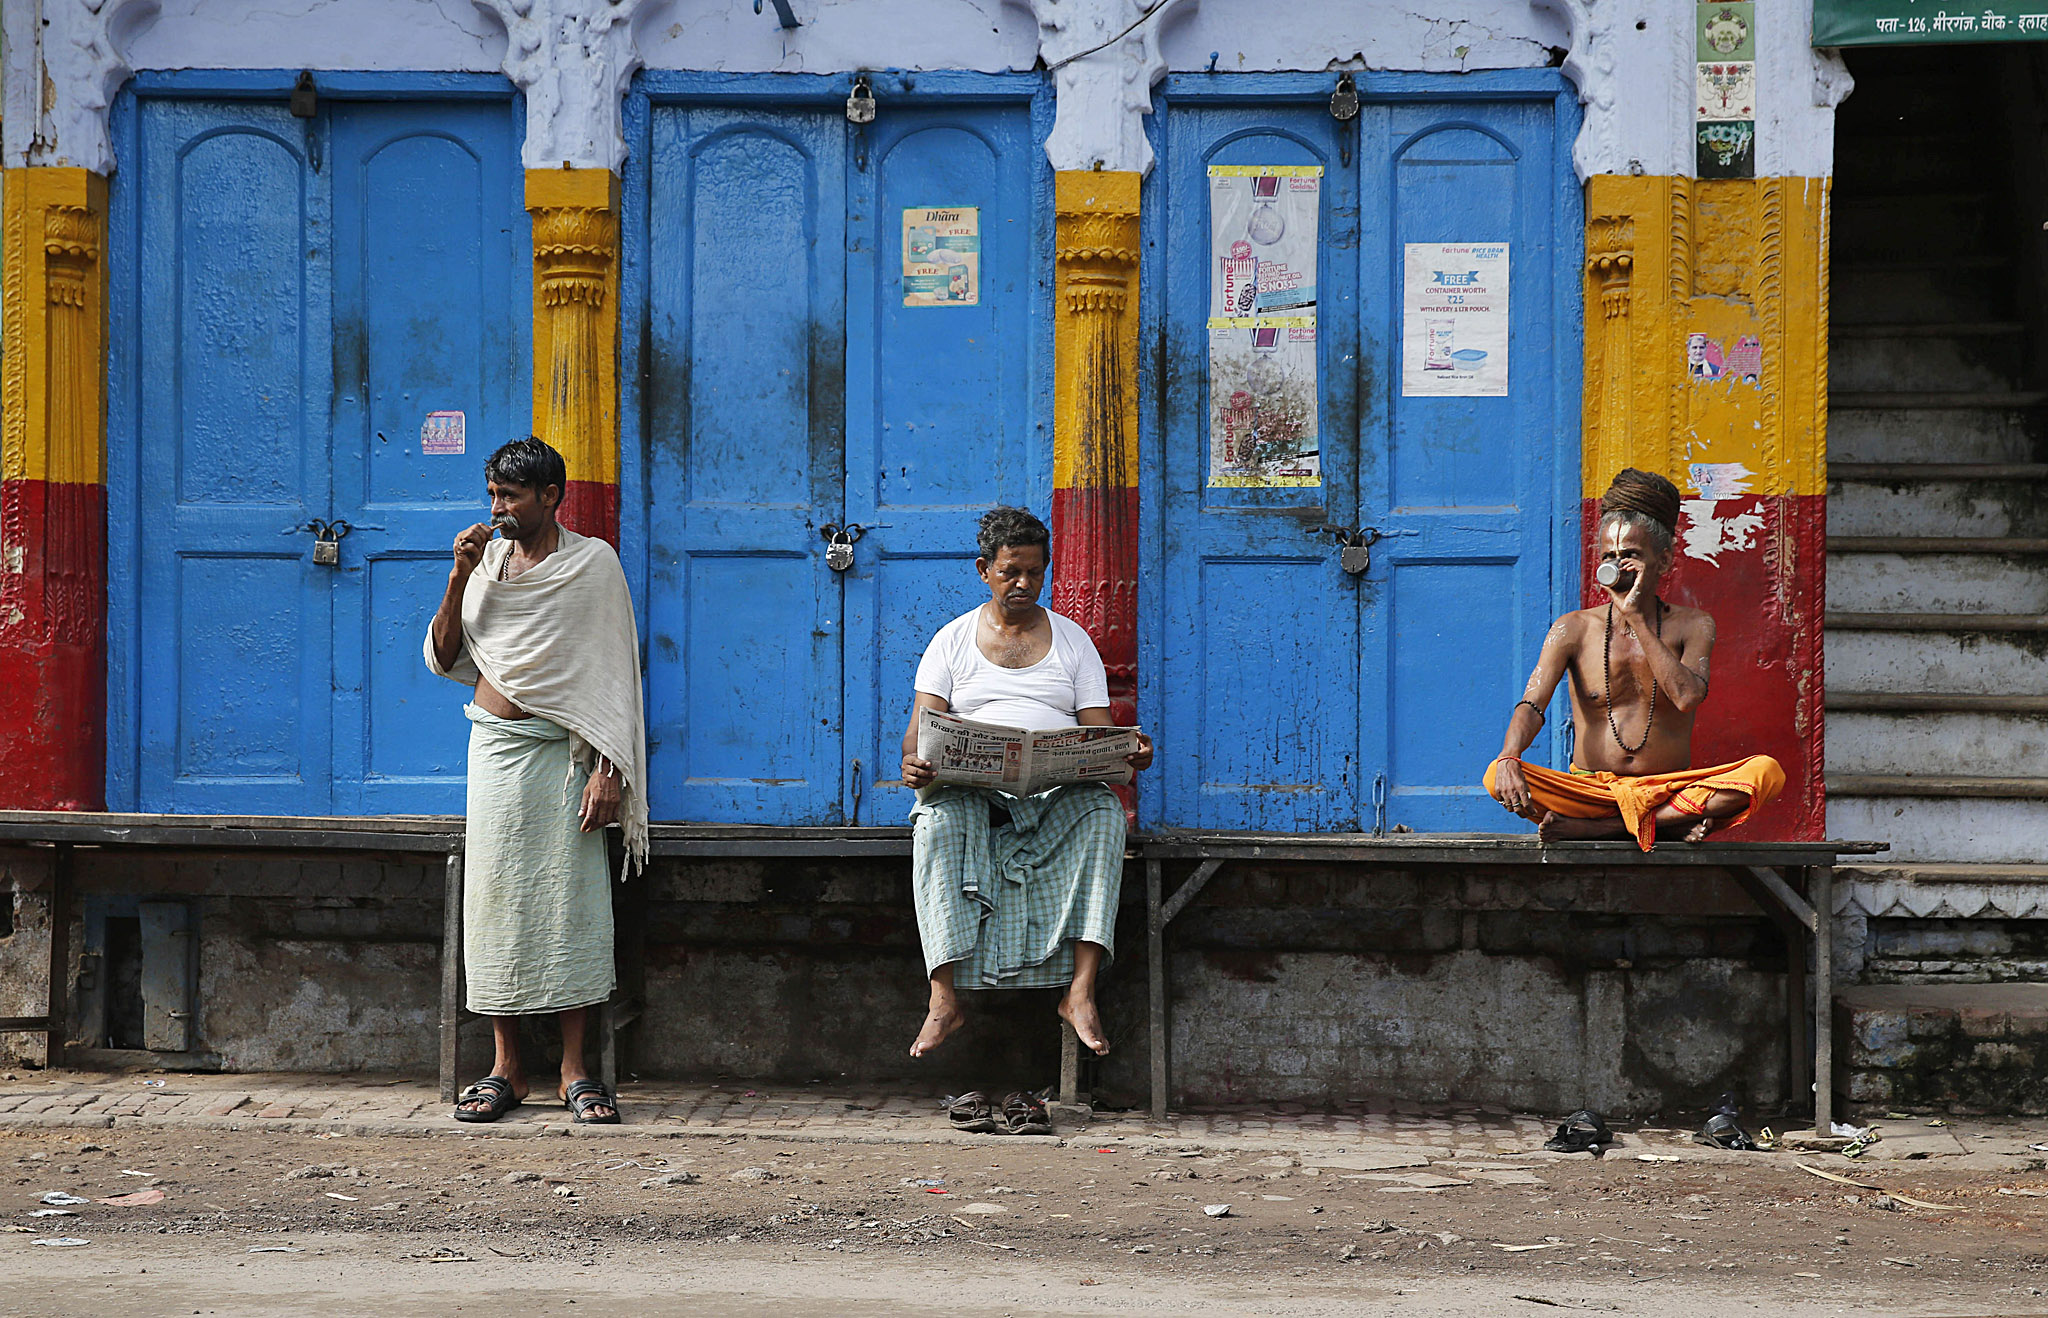 A man brushes his teeth as another reads a newspaper while a Hindu holy man sips tea in the morning in front of a closed shop in Allahabad, India, Wednesday, July 30, 2014. (AP Photo/ Rajesh Kumar Singh)